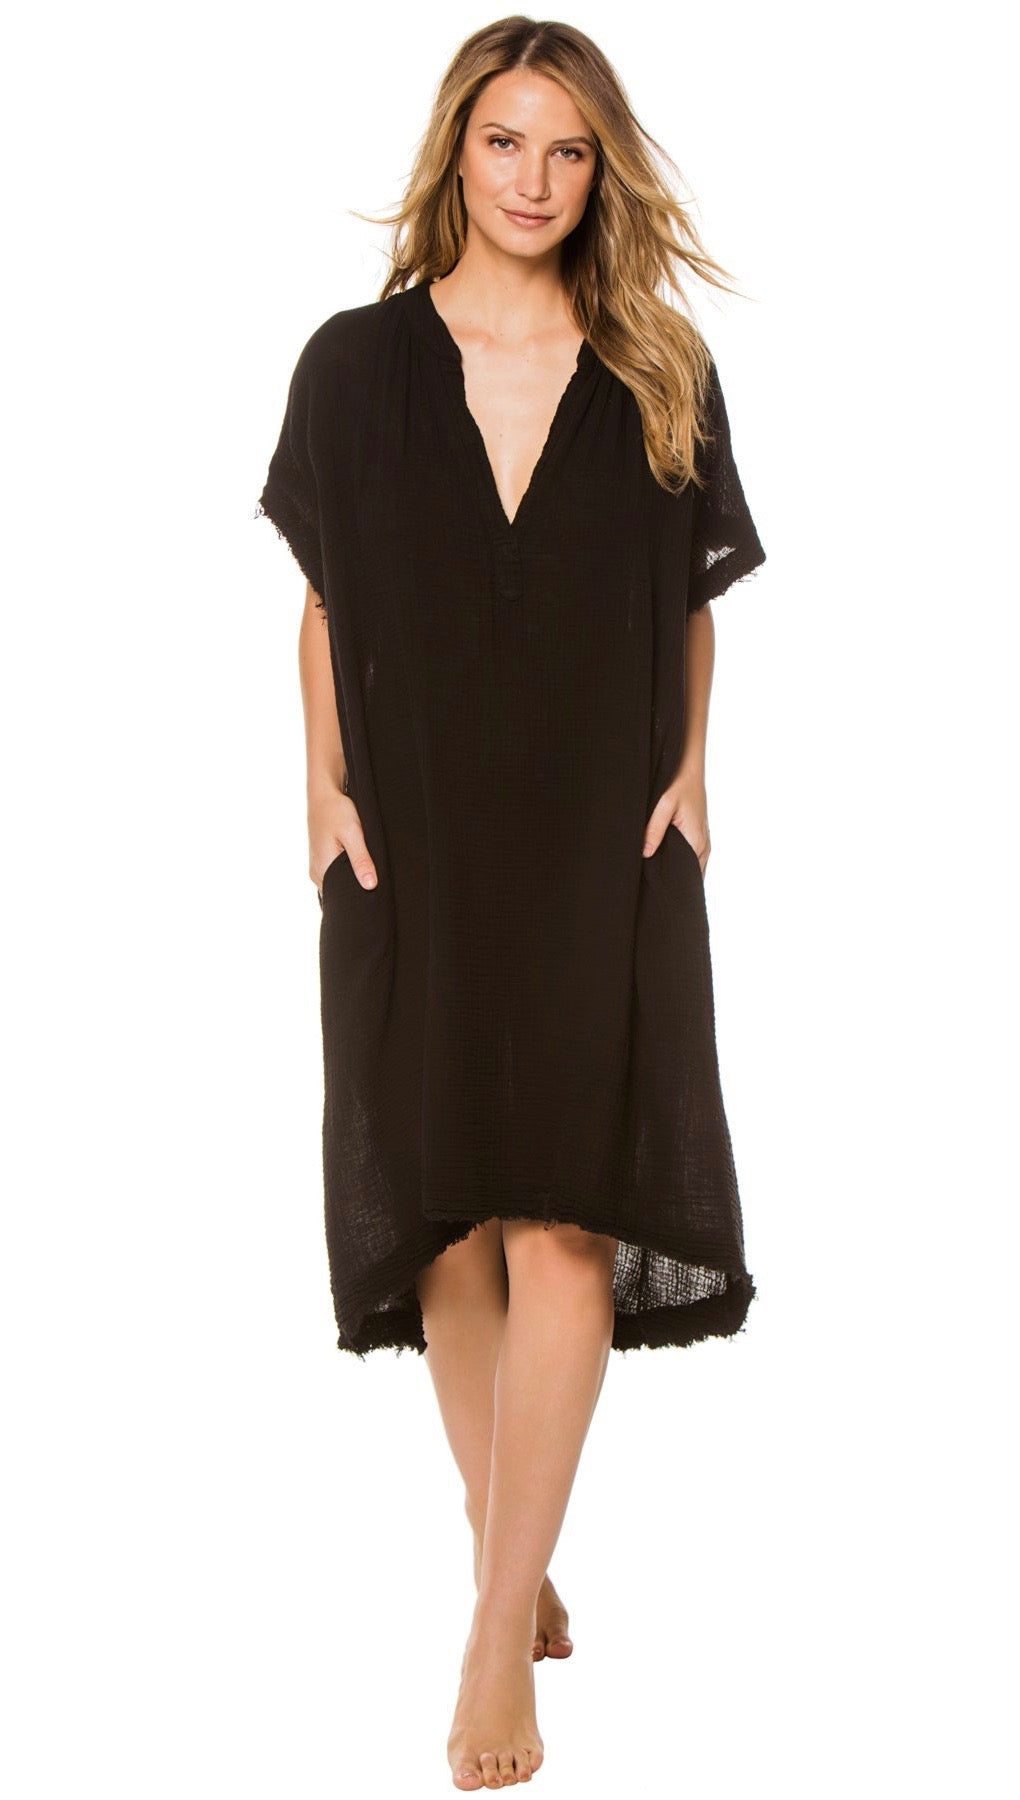 9Seed Tunisia Caftan Maxi Dress Black Frayed Gauze Maxi | ShopAA